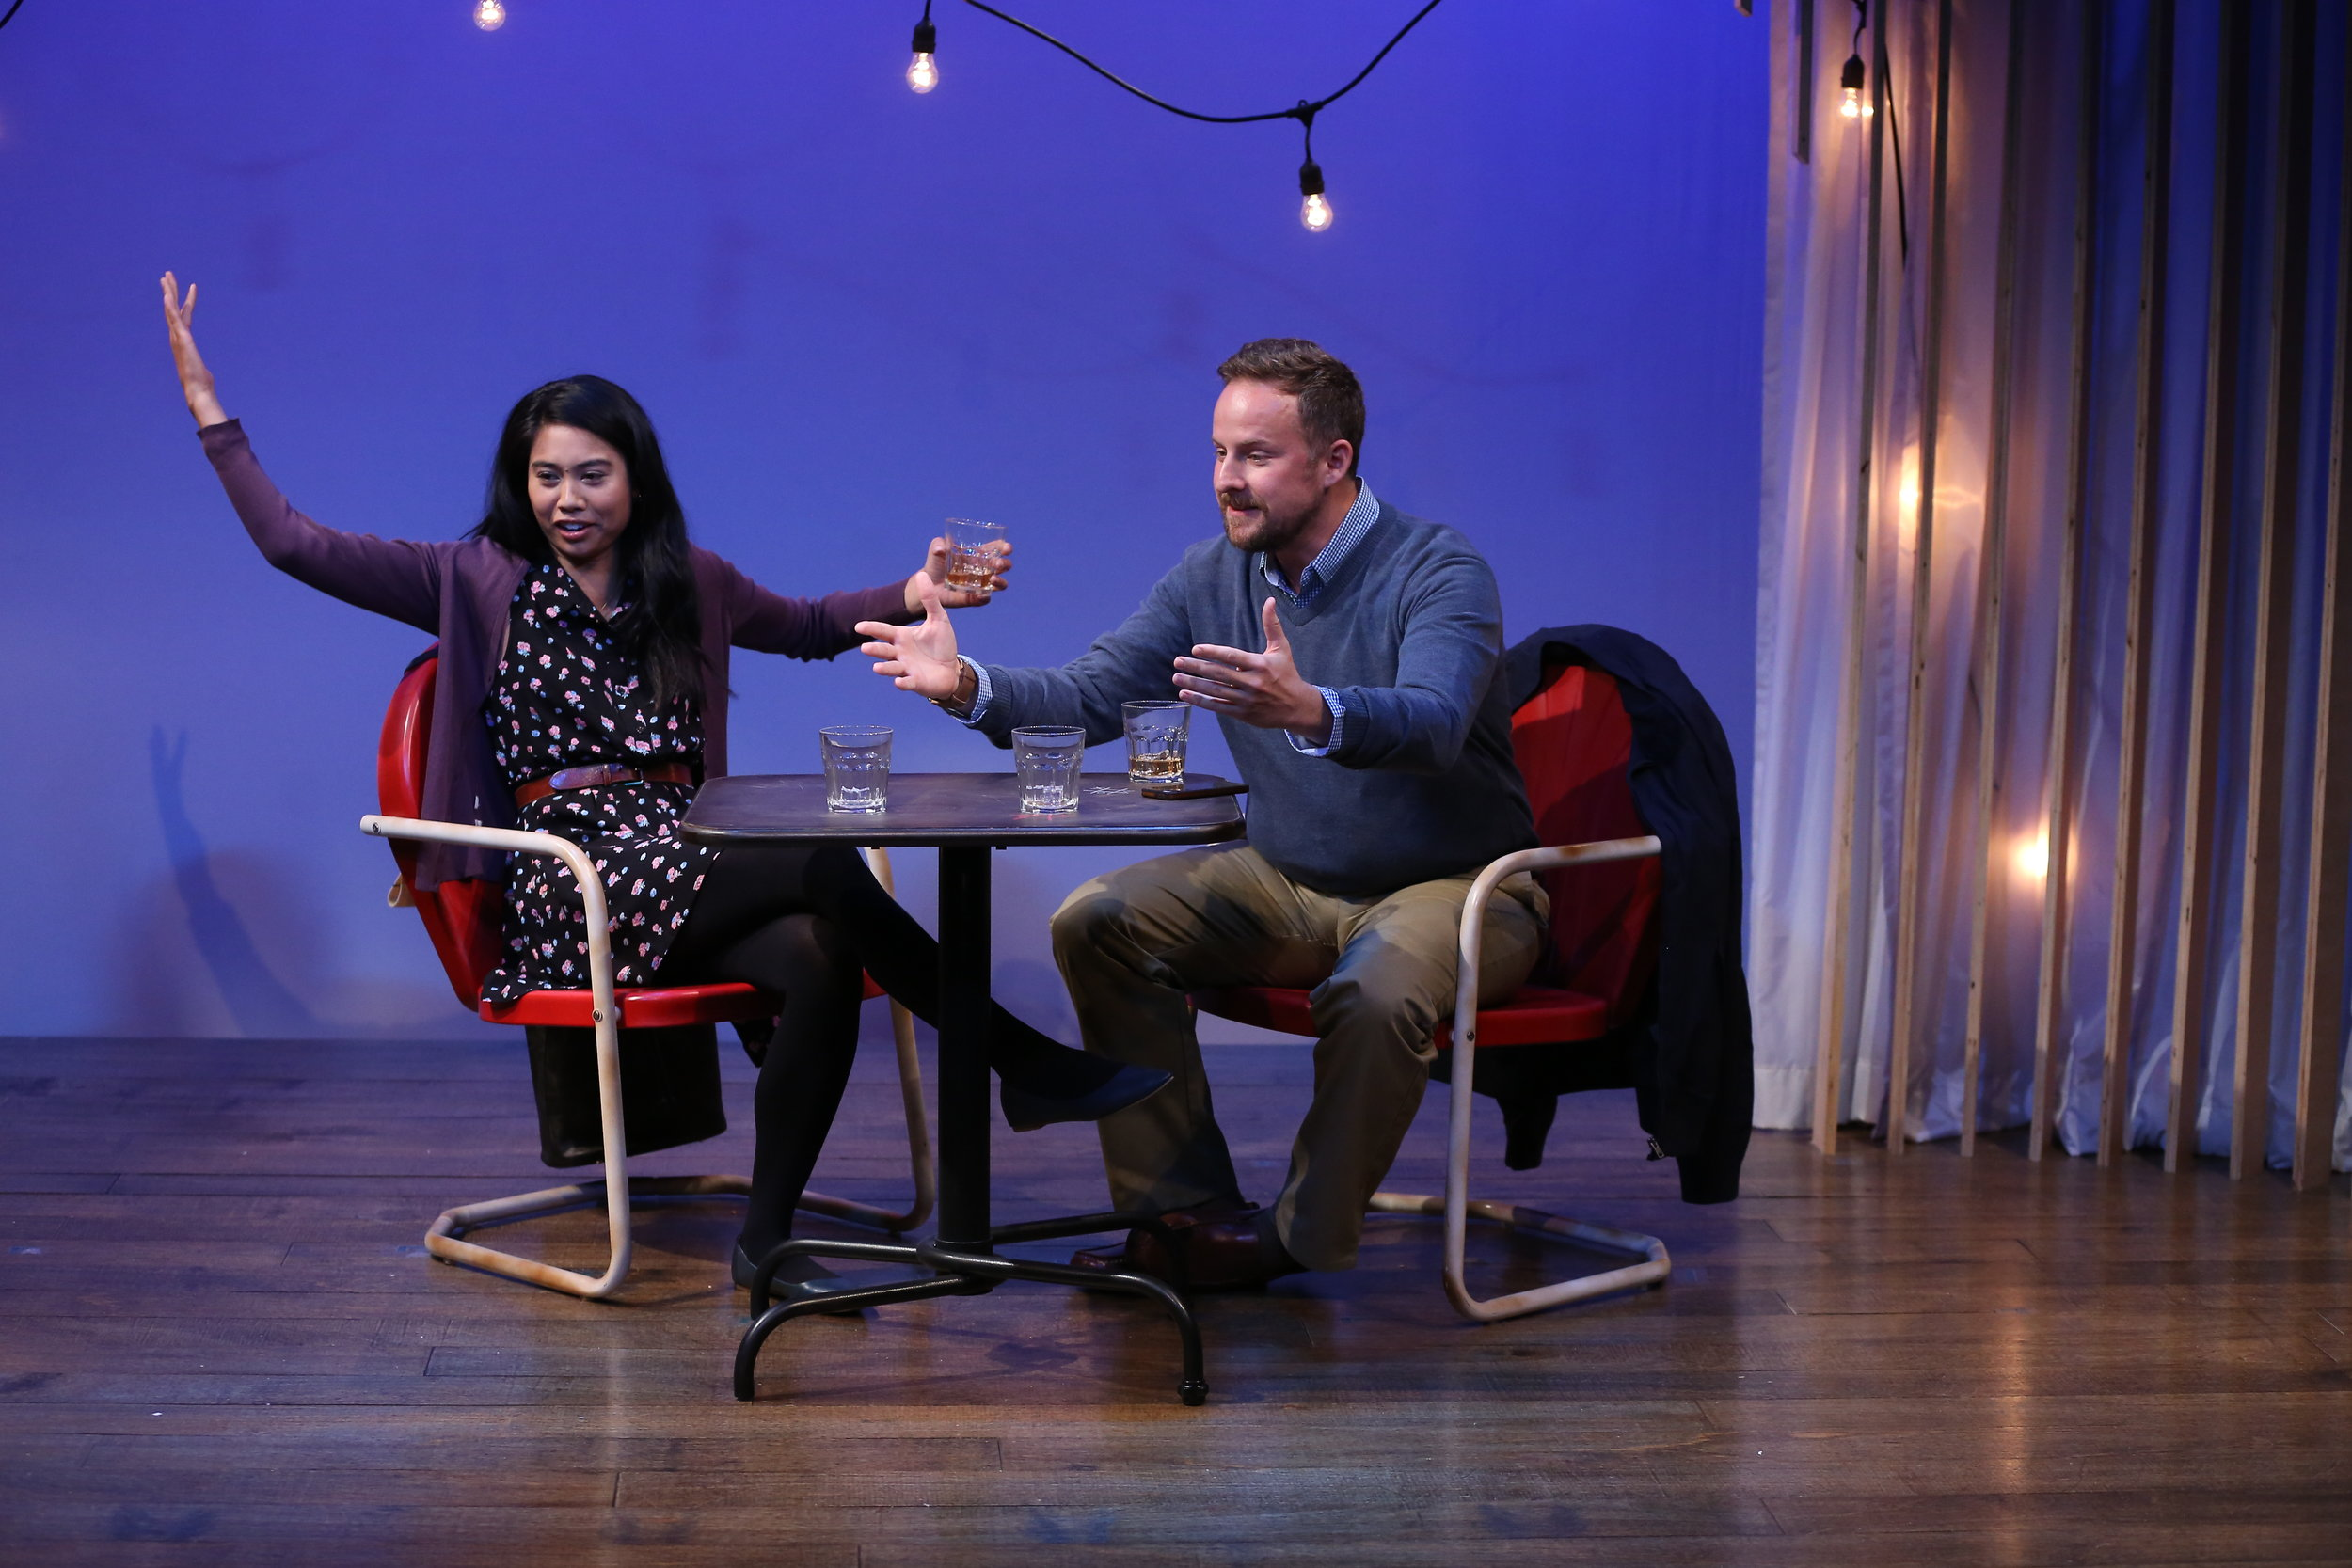 L-R: Mariah Lee, Francesca and Stephen Guarino in KENNY'S TAVERN by Abby Rosebrock, part of Summer Shorts 2018 at 59E59 Theaters. Photo by Carol Rosegg.